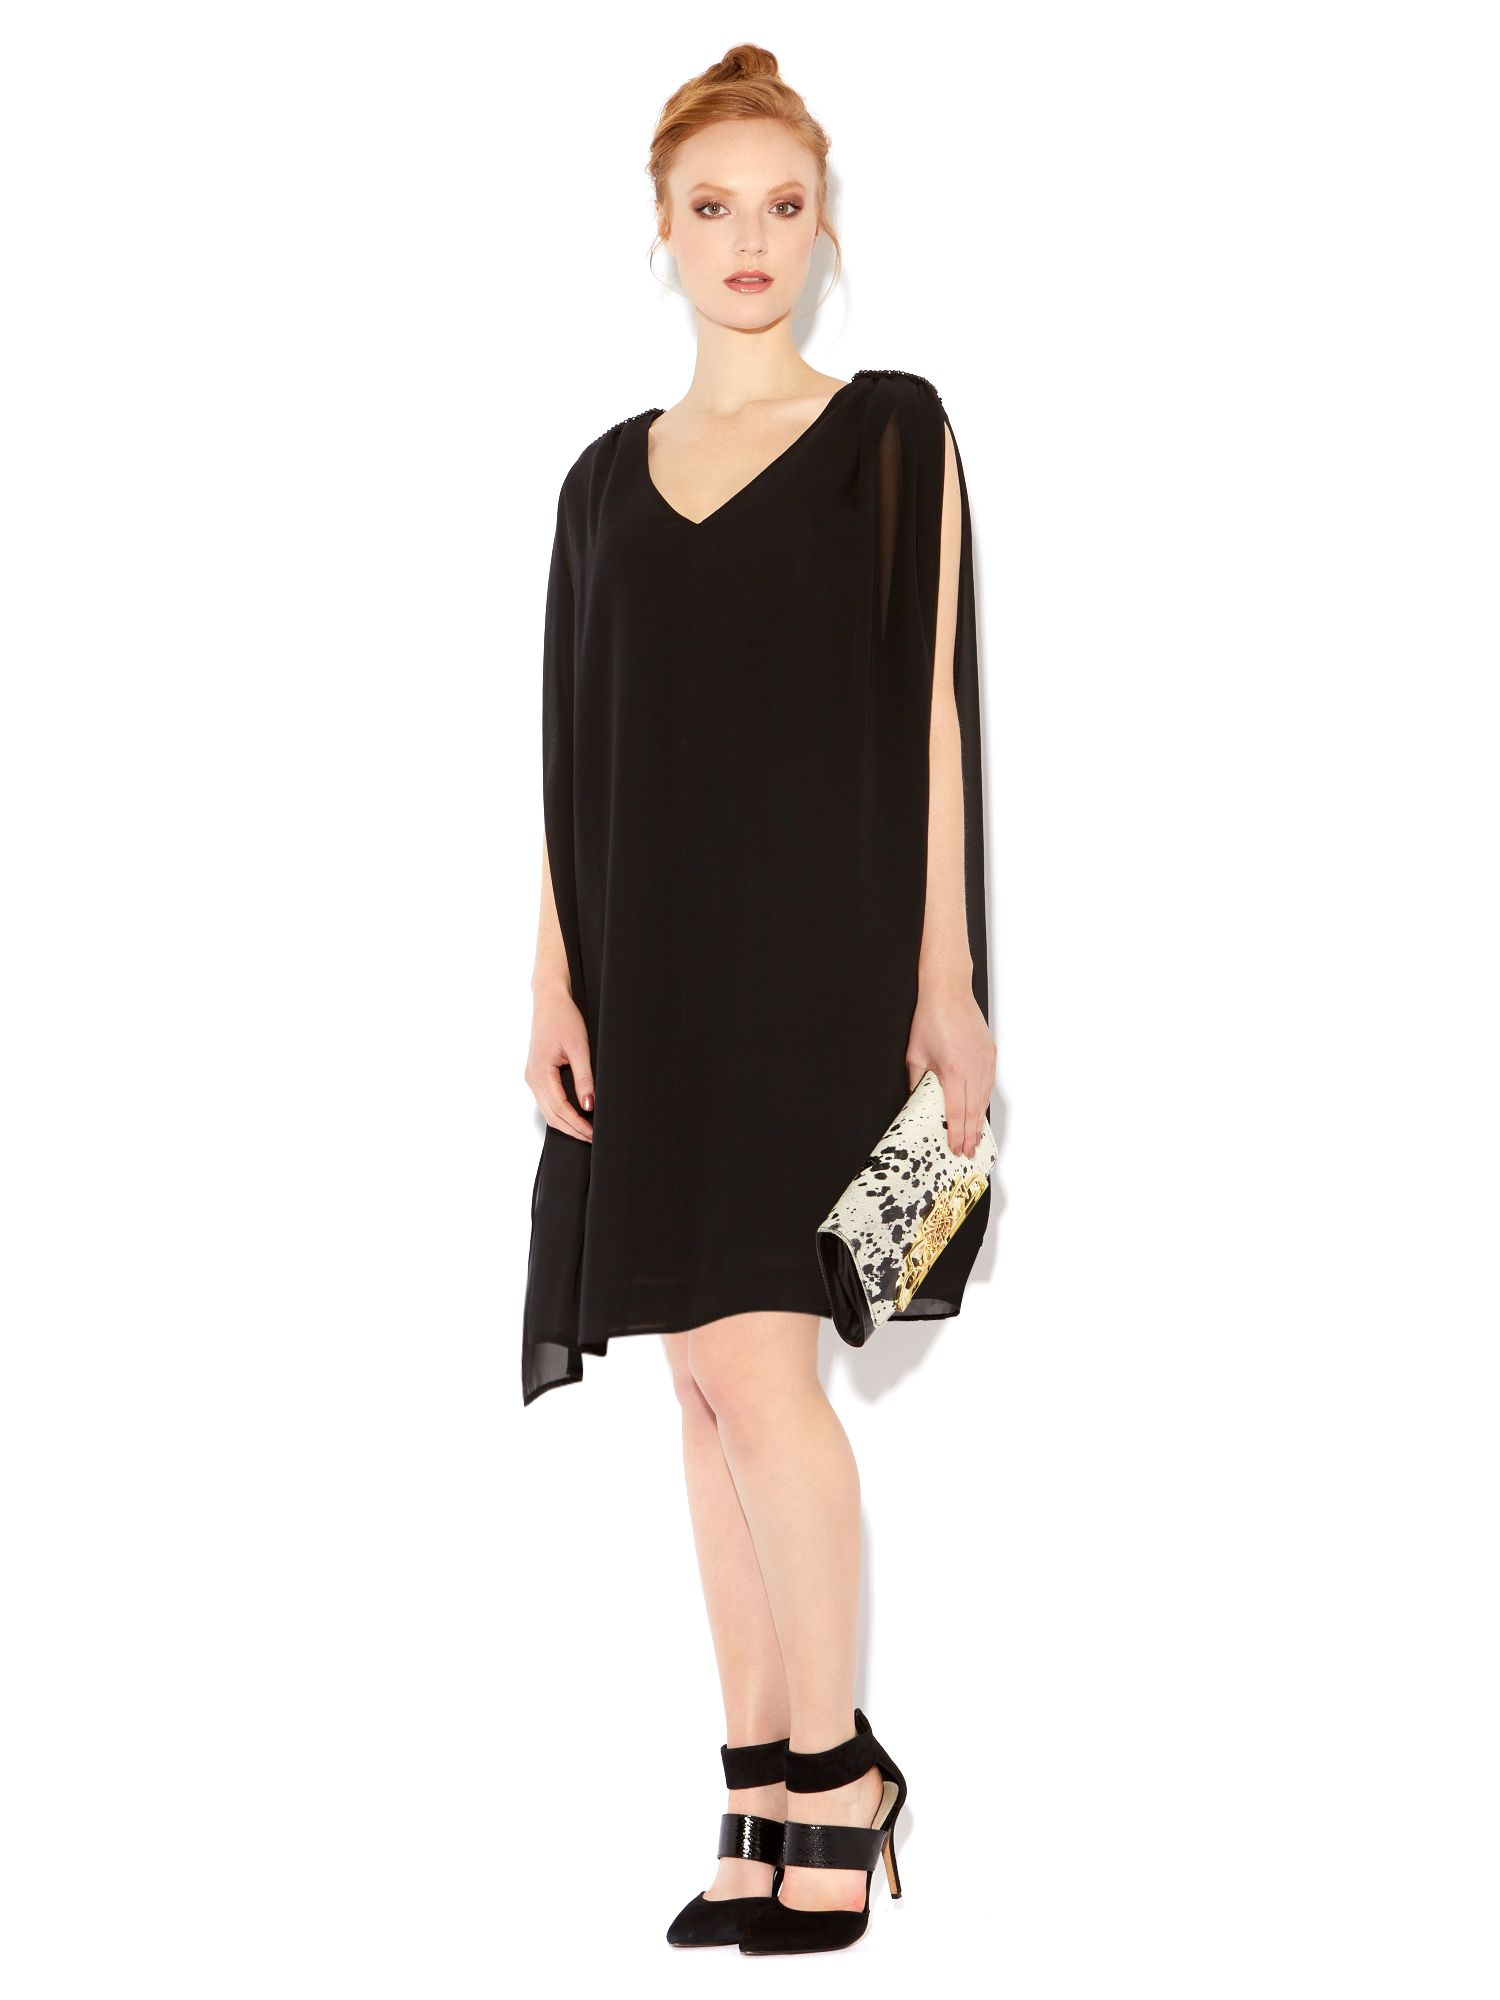 Sleeveless chiffon overlay dress with emb